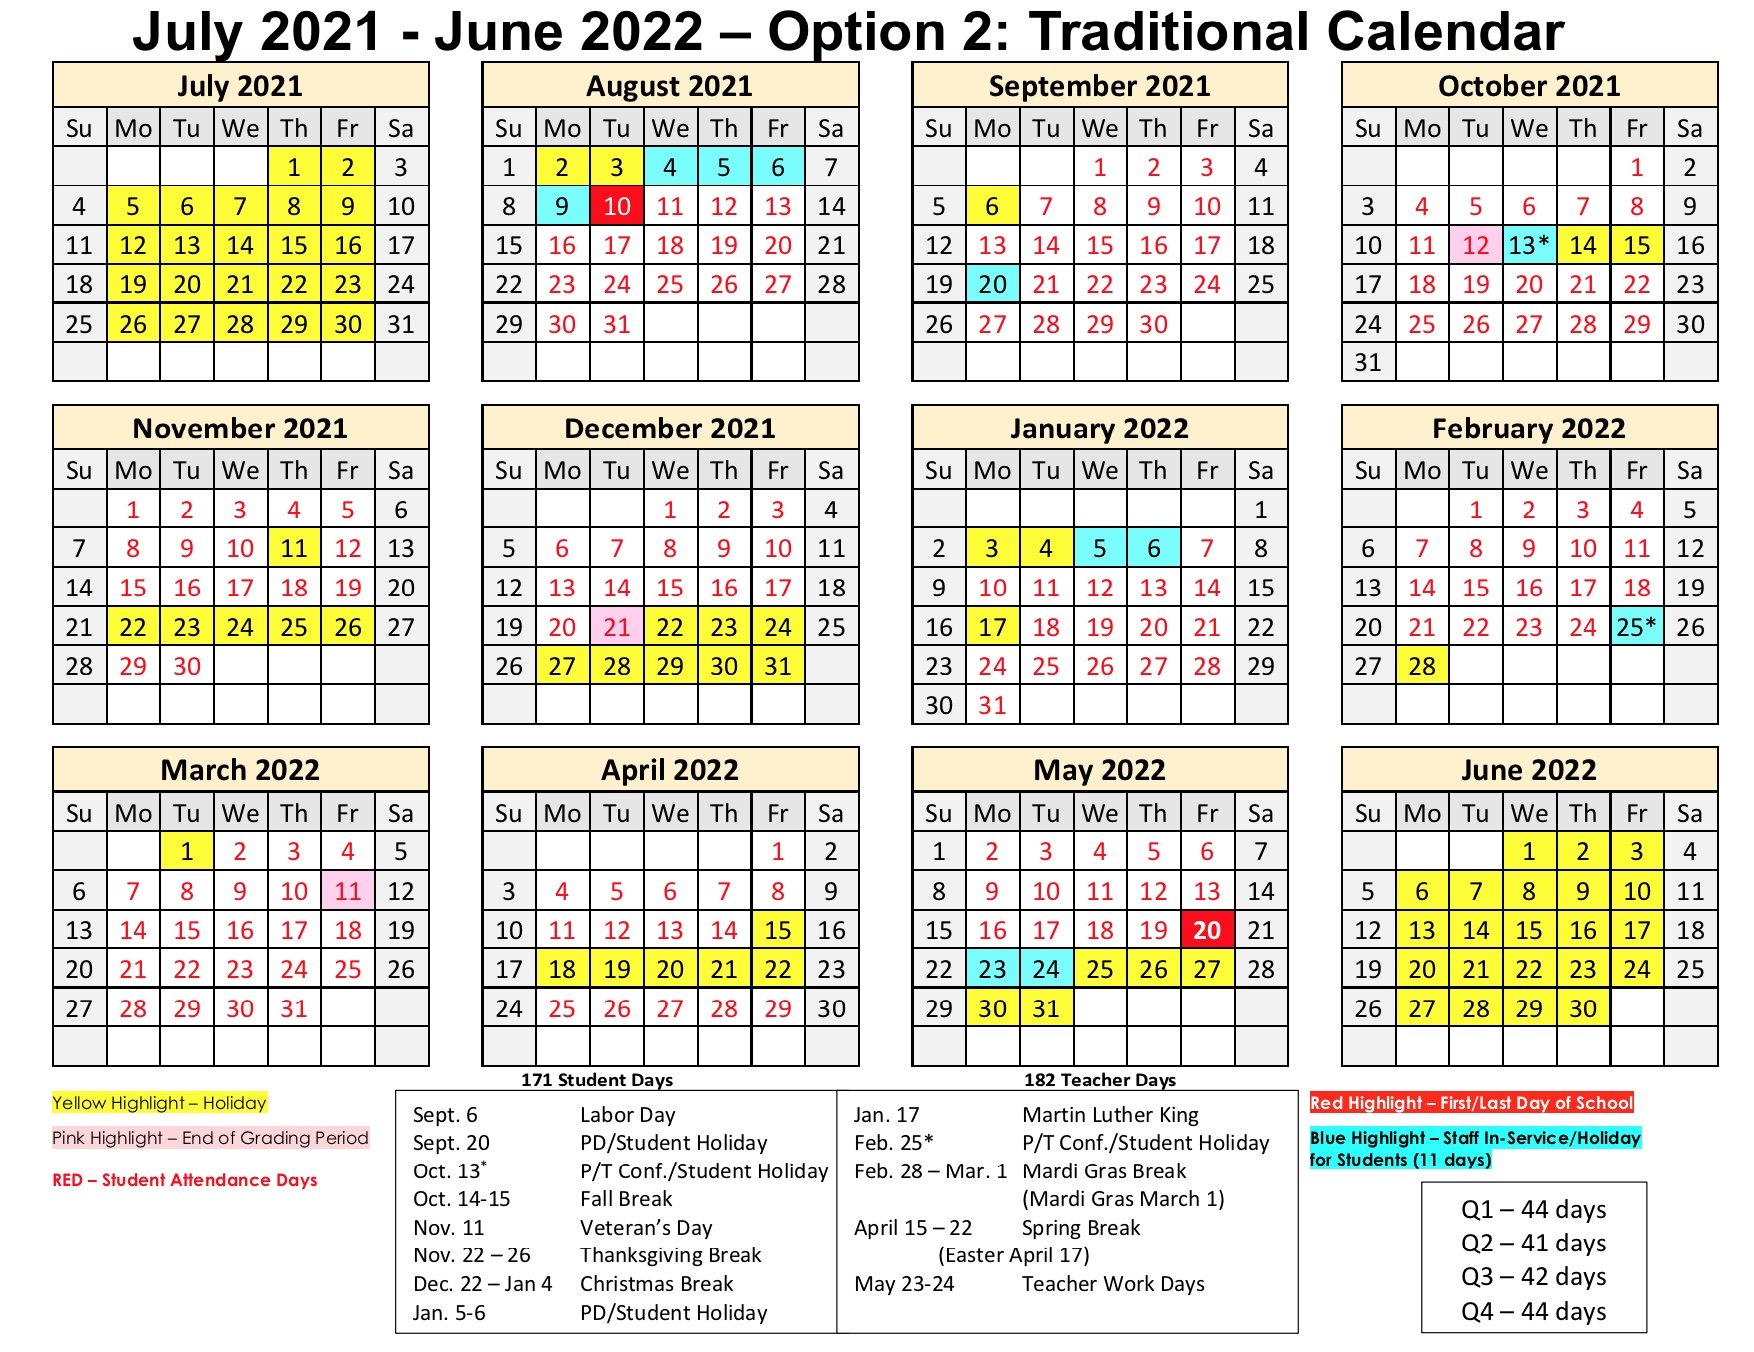 """<div style=""""text-align: center;""""><span style=""""font-size: 18pt;"""">Option 2: Traditional Calendar <br>To download click <a href=""""https://tinyurl.com/RPSBTraditionalCalendar"""" rel=""""nofollow"""" target=""""_blank"""">https://tinyurl.com/RPSBTraditionalCalendar</a></span></div>"""